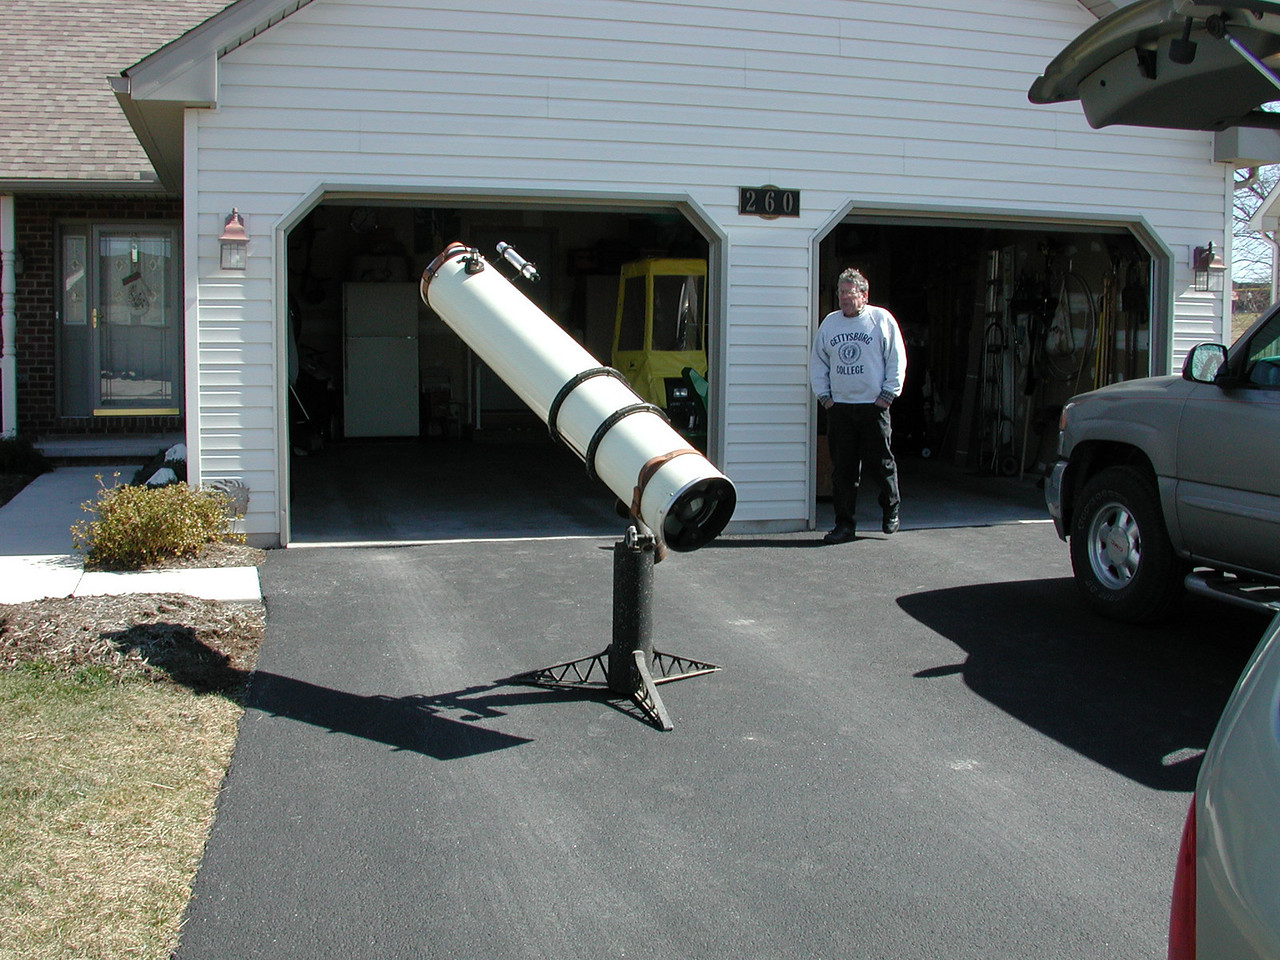 The telescopes 3 rd owner ? Mathmatican Dick Cooper of Gettysburg College shown in the picture; obtained this telescope from Mr. Wayne Miller in 2001. The story is Wayne obtained the telescope from his father  (Miller) who is alleged to be the telescopes original owner. The Millers lived on a farm in Littletown, PA which is 10 miles south of Gettysburg. Surely they must have enjoyed some beatiful nights on the farm with the dark skies of  the 50's !!